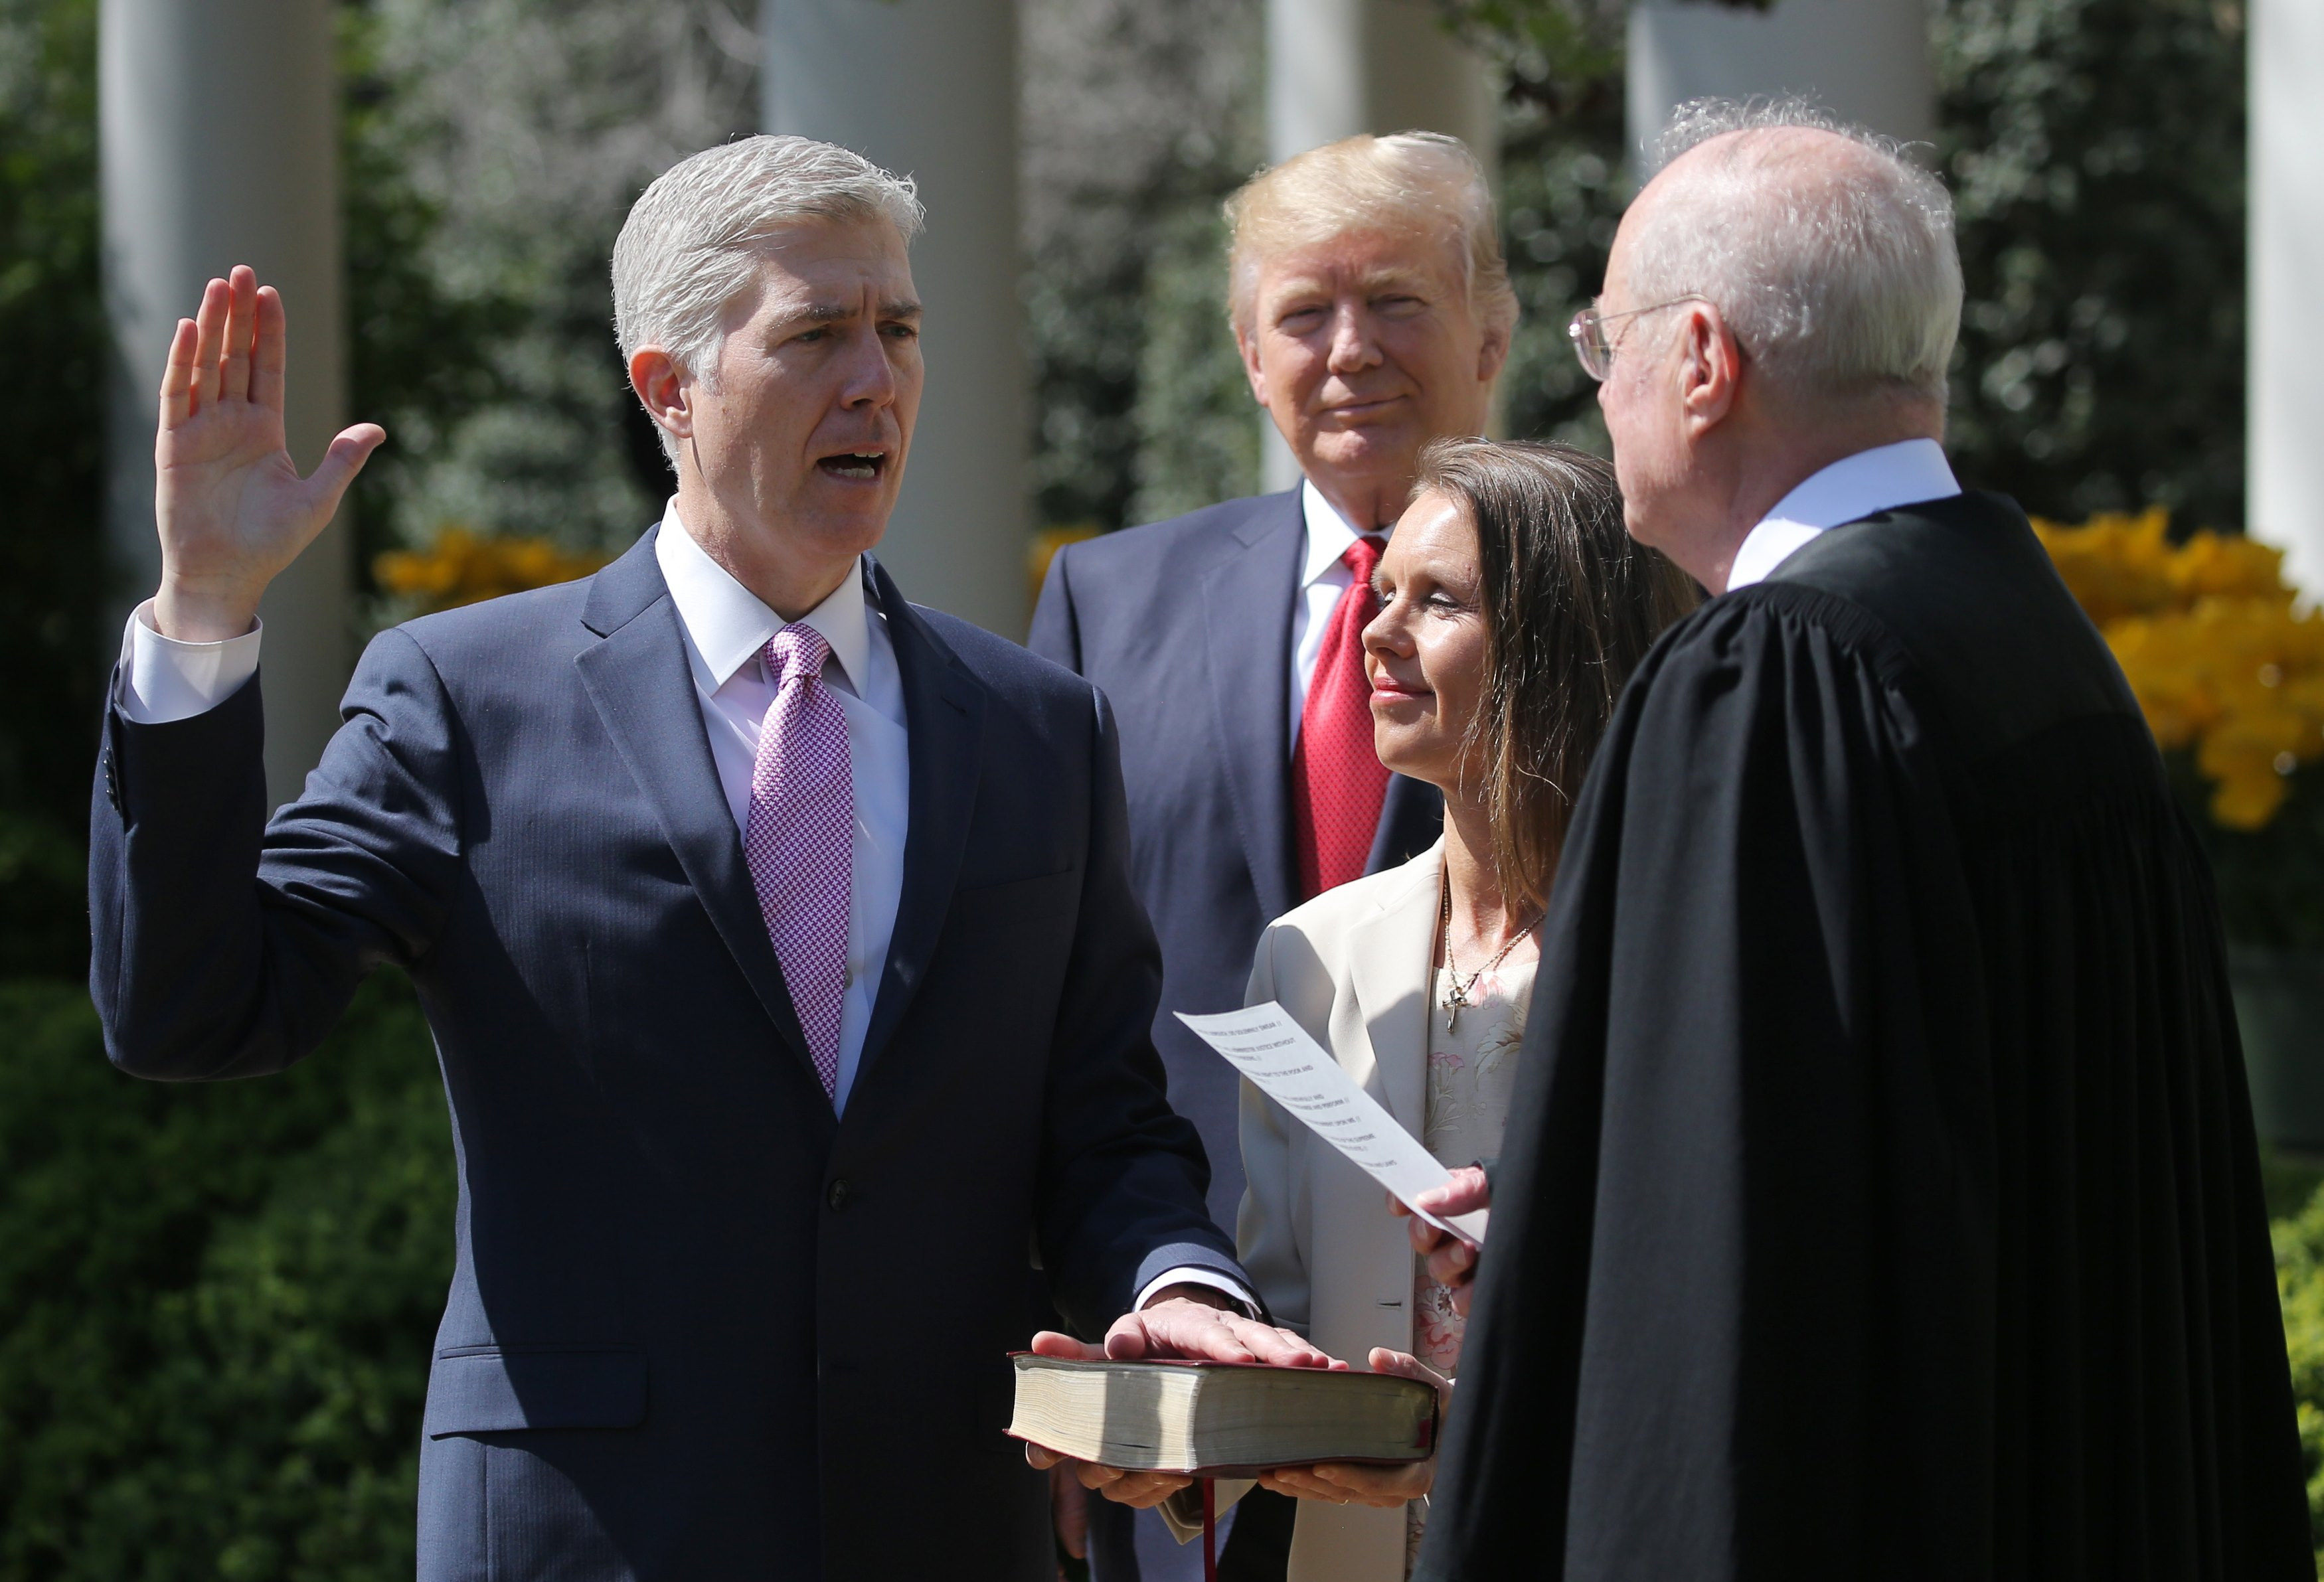 udge Neil Gorsuch (L) is sworn in as an associate justice of the Supreme Court by Supreme Court Associate Justice Anthony Kennedy (R) , as U.S. President Donald J. Trump (C) watches with Louise Gorsuch in the Rose Garden of the White House in Washington, U.S